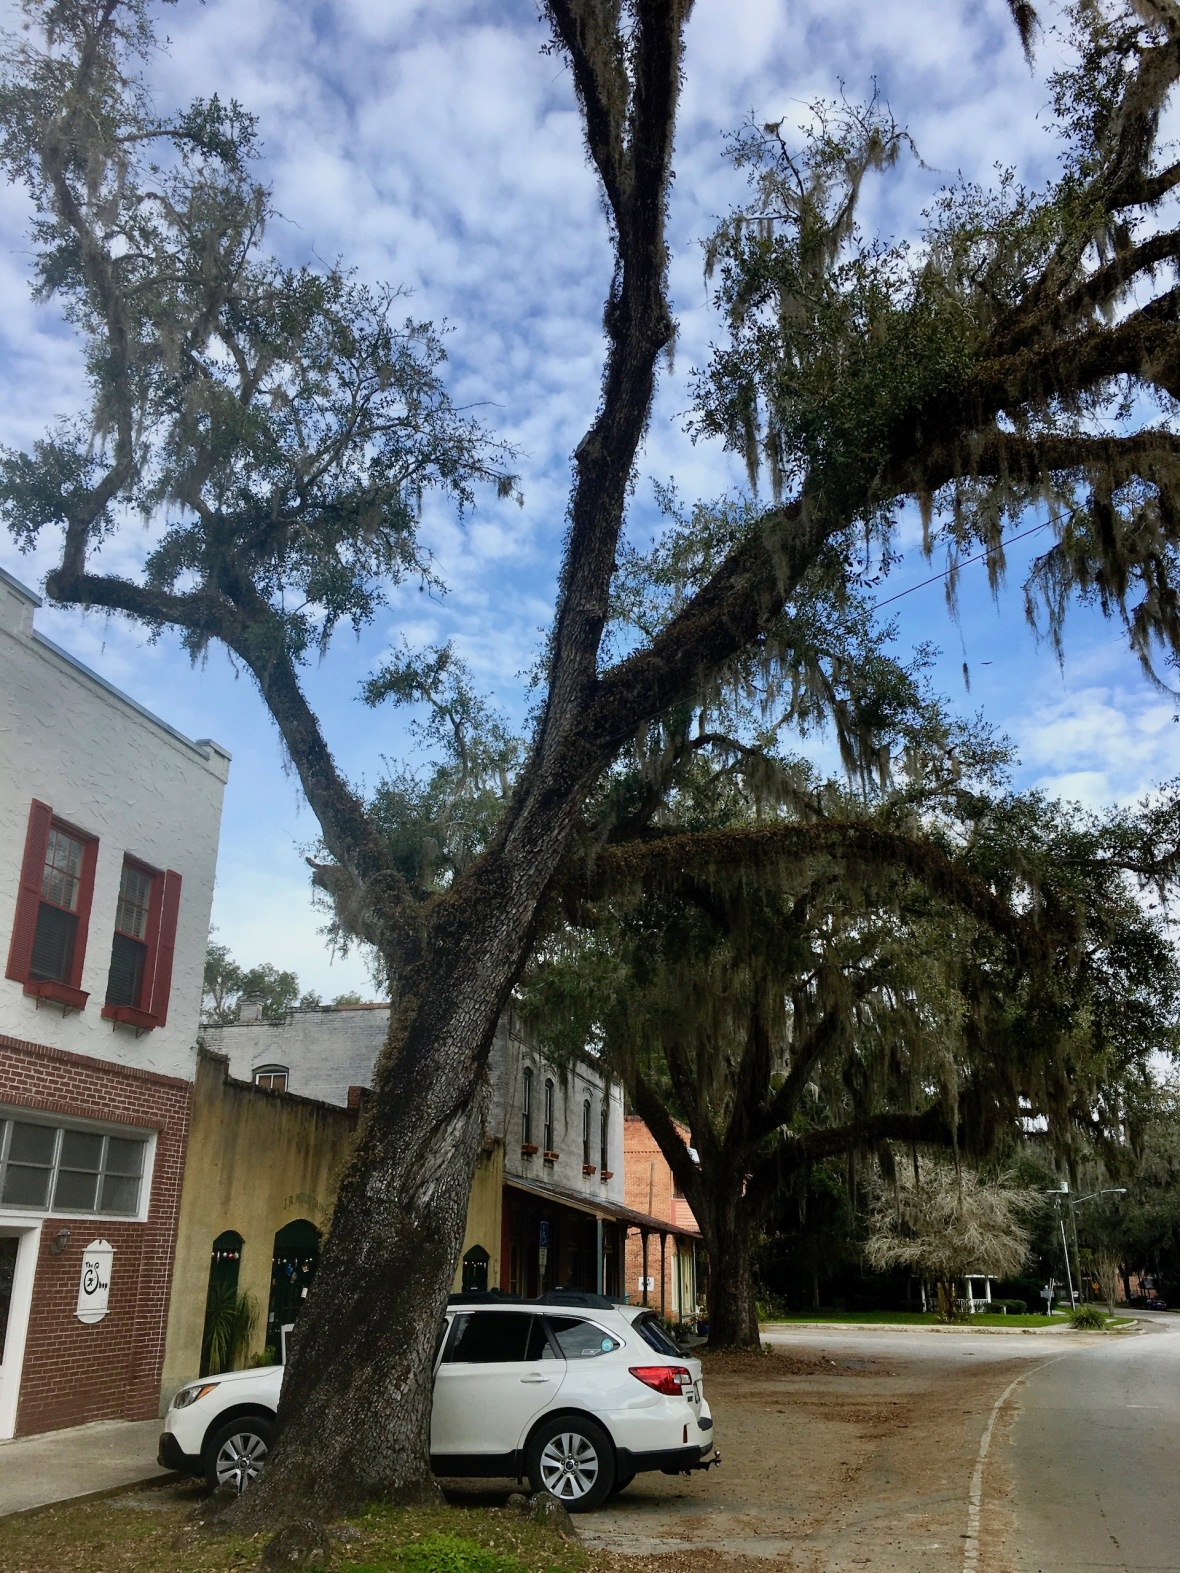 Downtown Micanopy Florida on a cold January morning